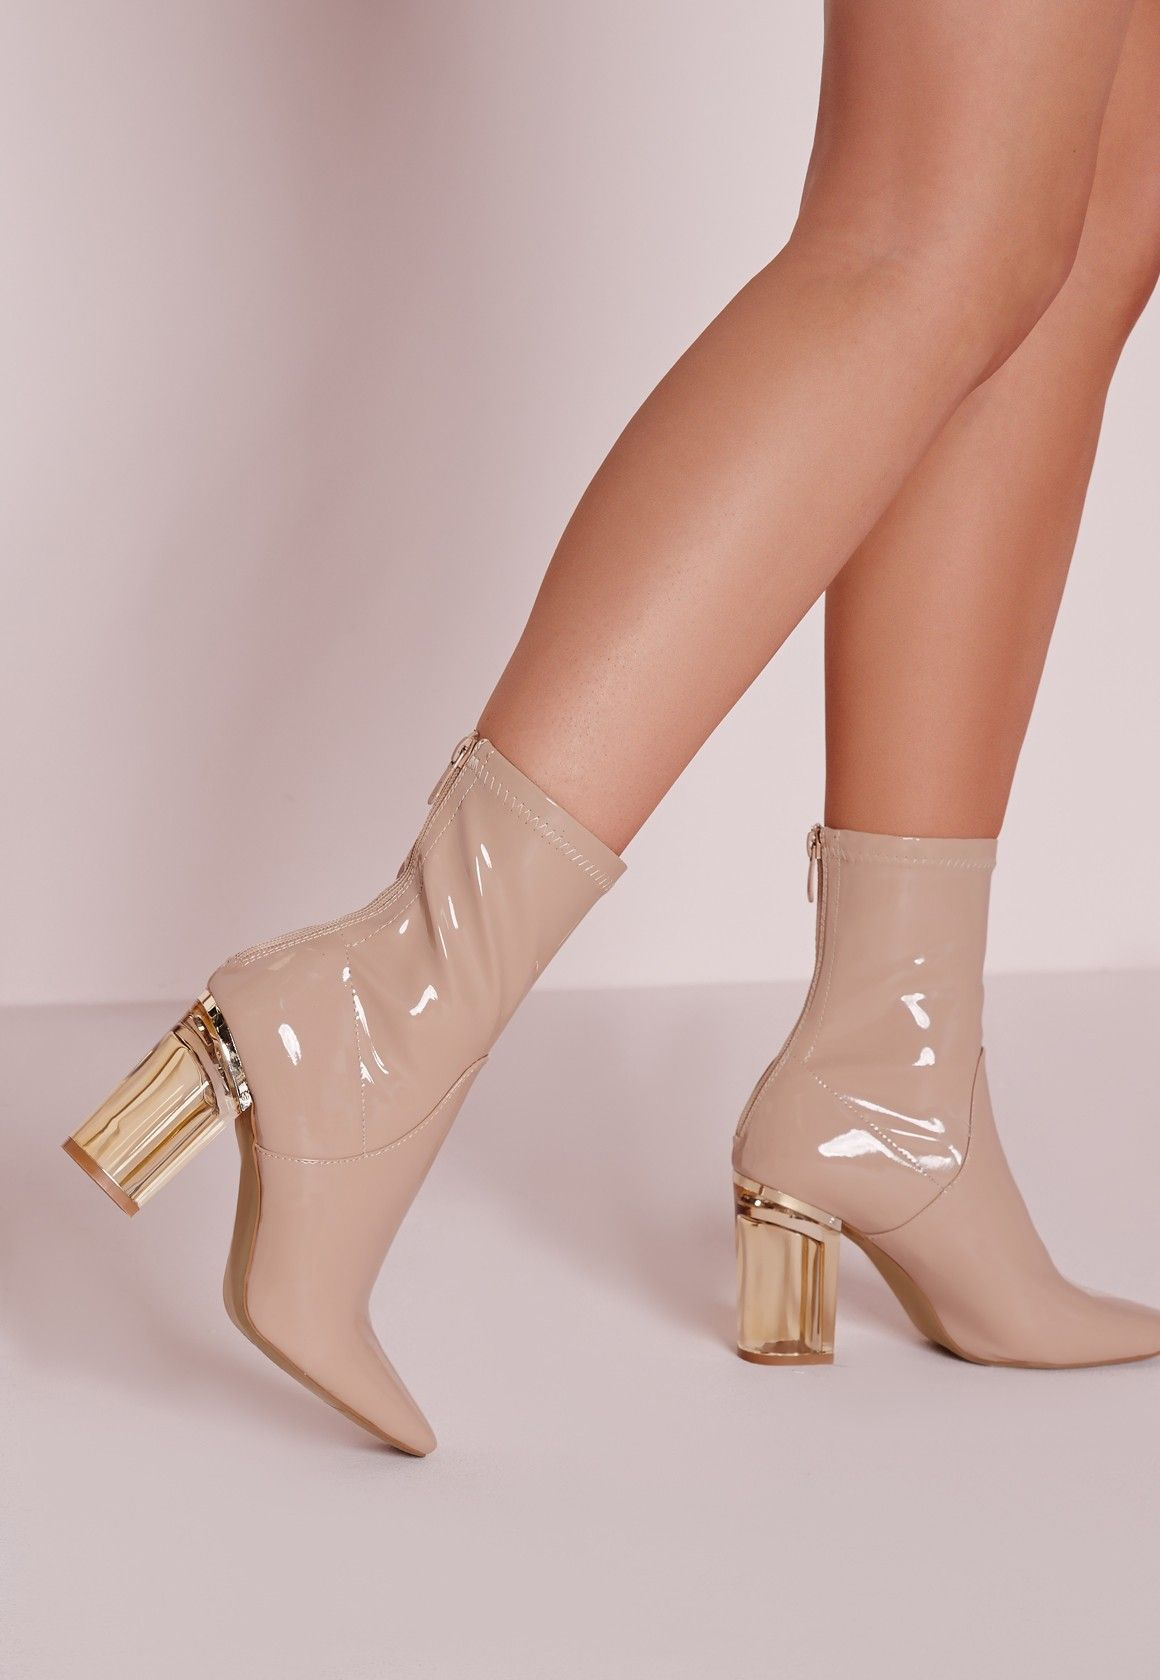 9900aa87edfe Ensure all eyes are on you with this seasons hottest heeled ankle boots!  Featuring a clear gold block heel